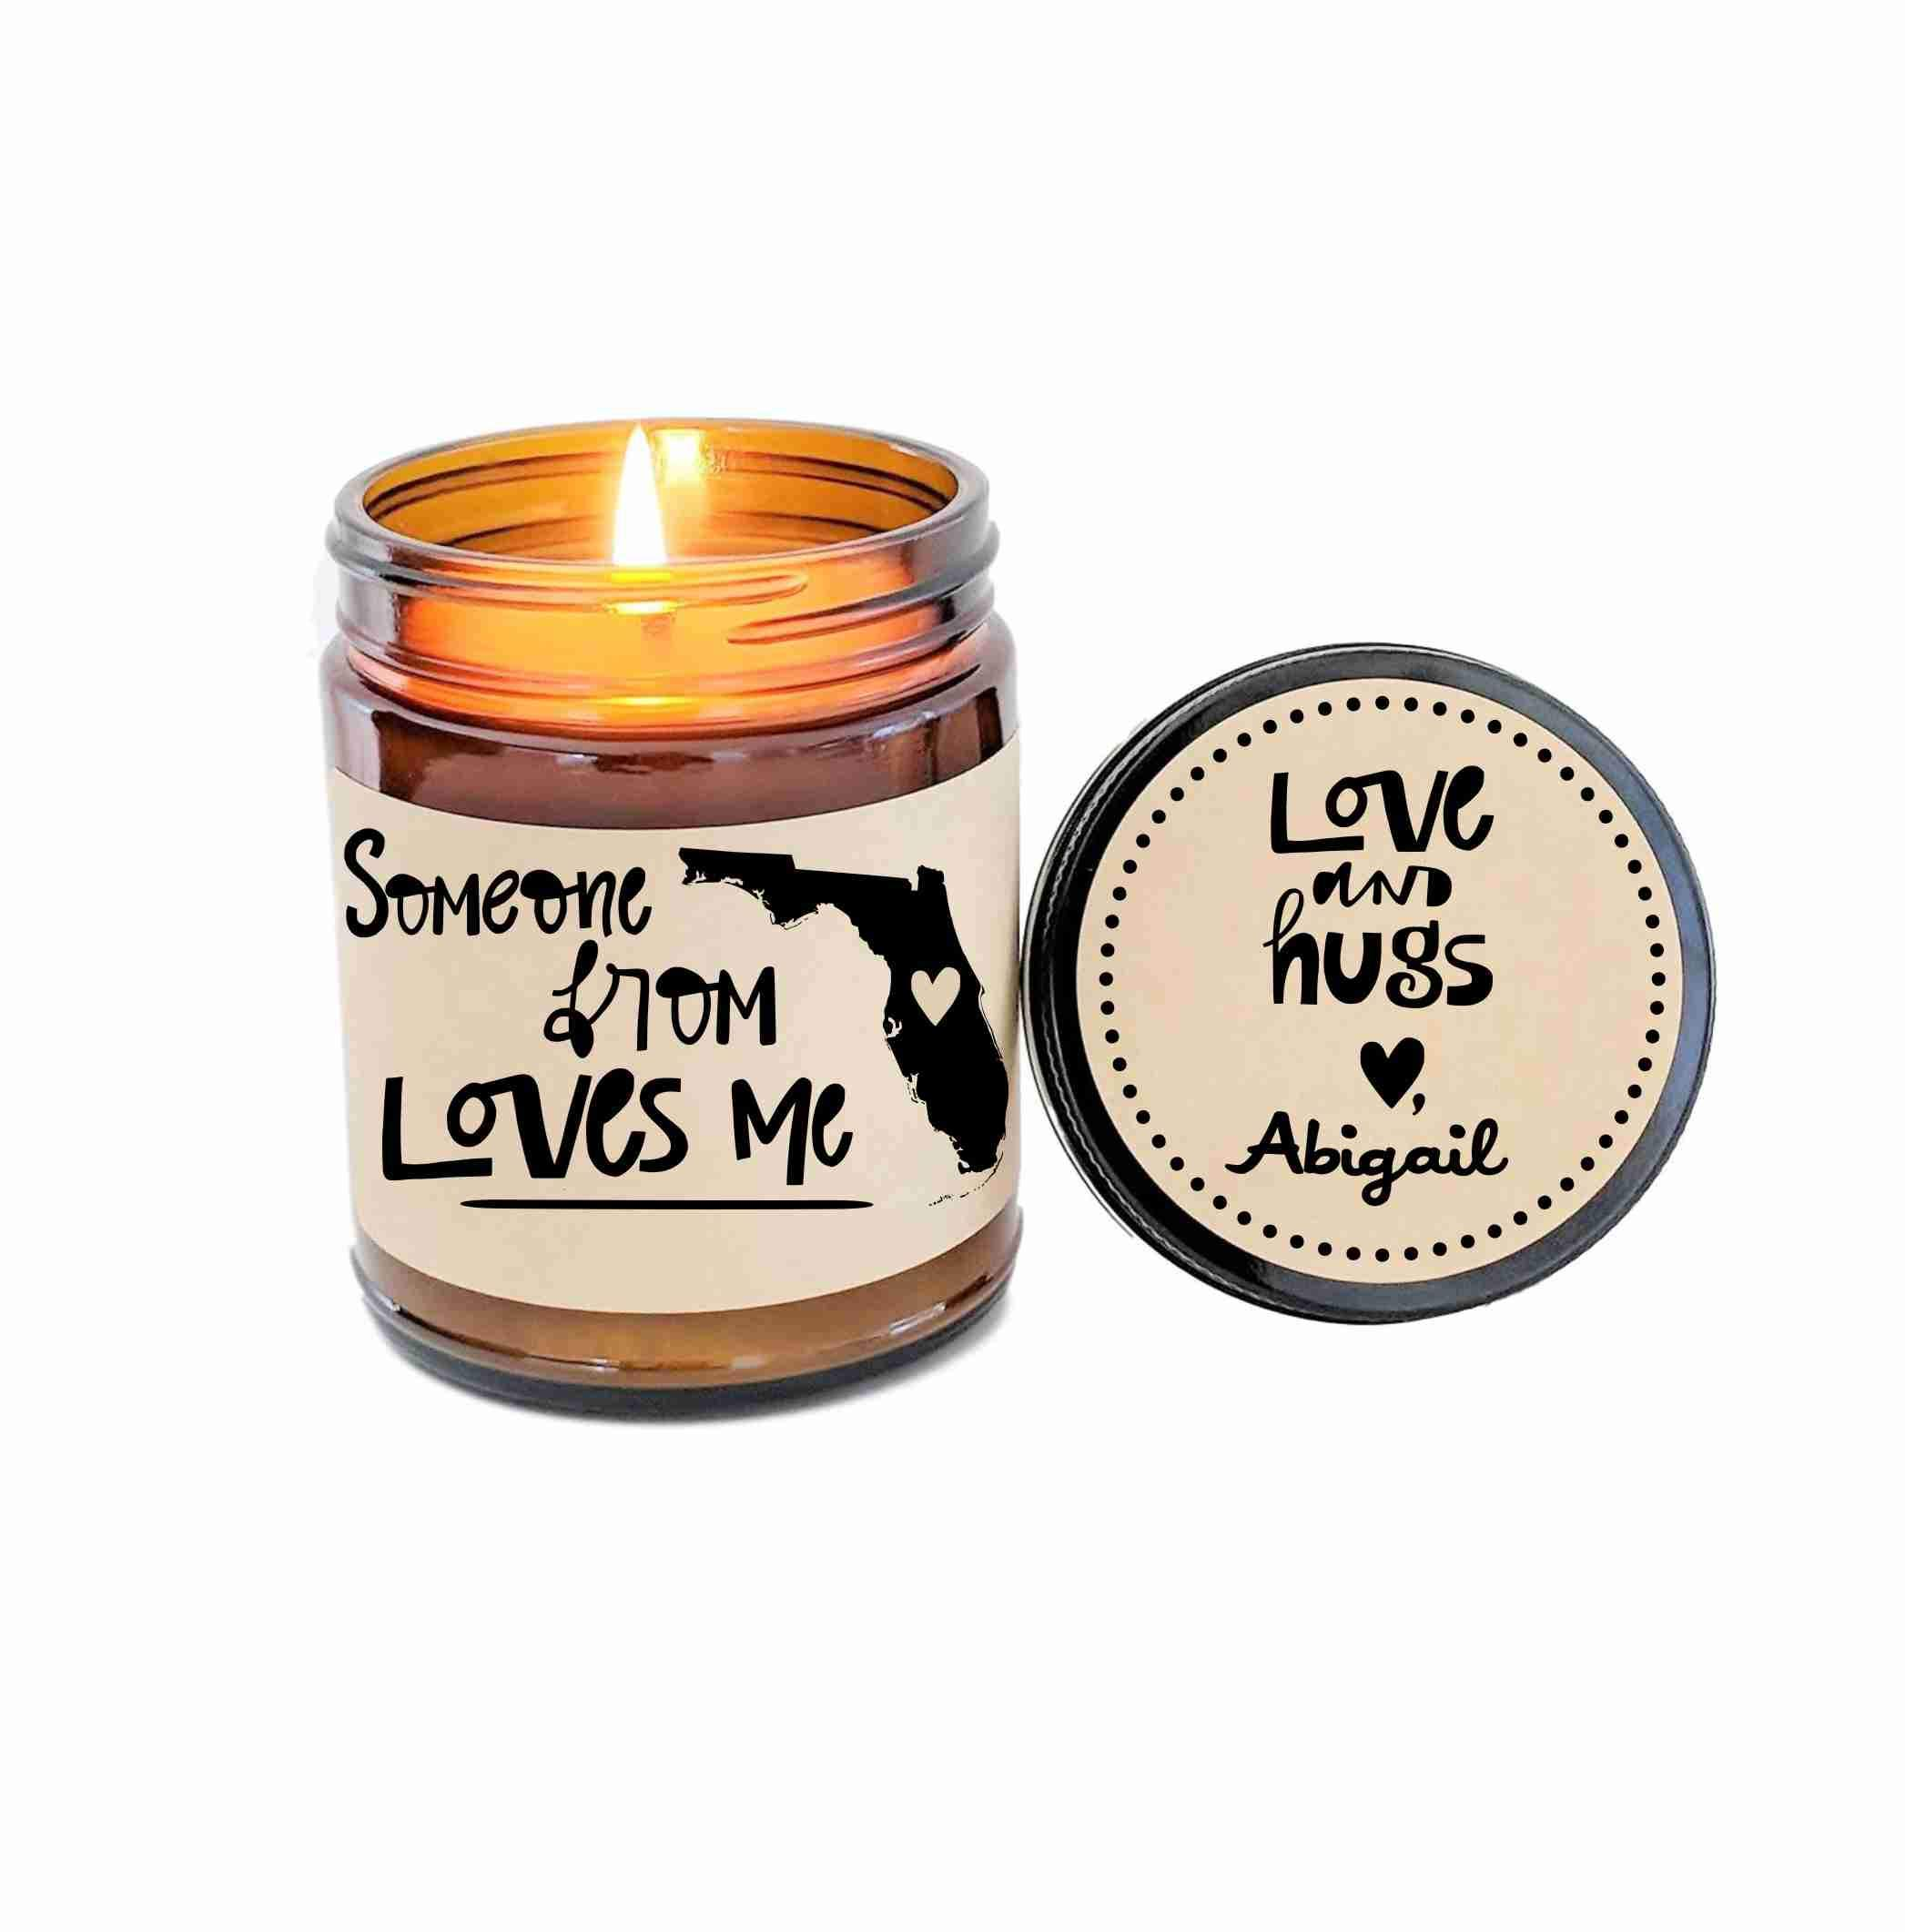 Florida Love Someone from Florida Loves Me Long Distance Gift LDR Gift Someone In Florida Loves Me Heart in Florida Gators Florida State